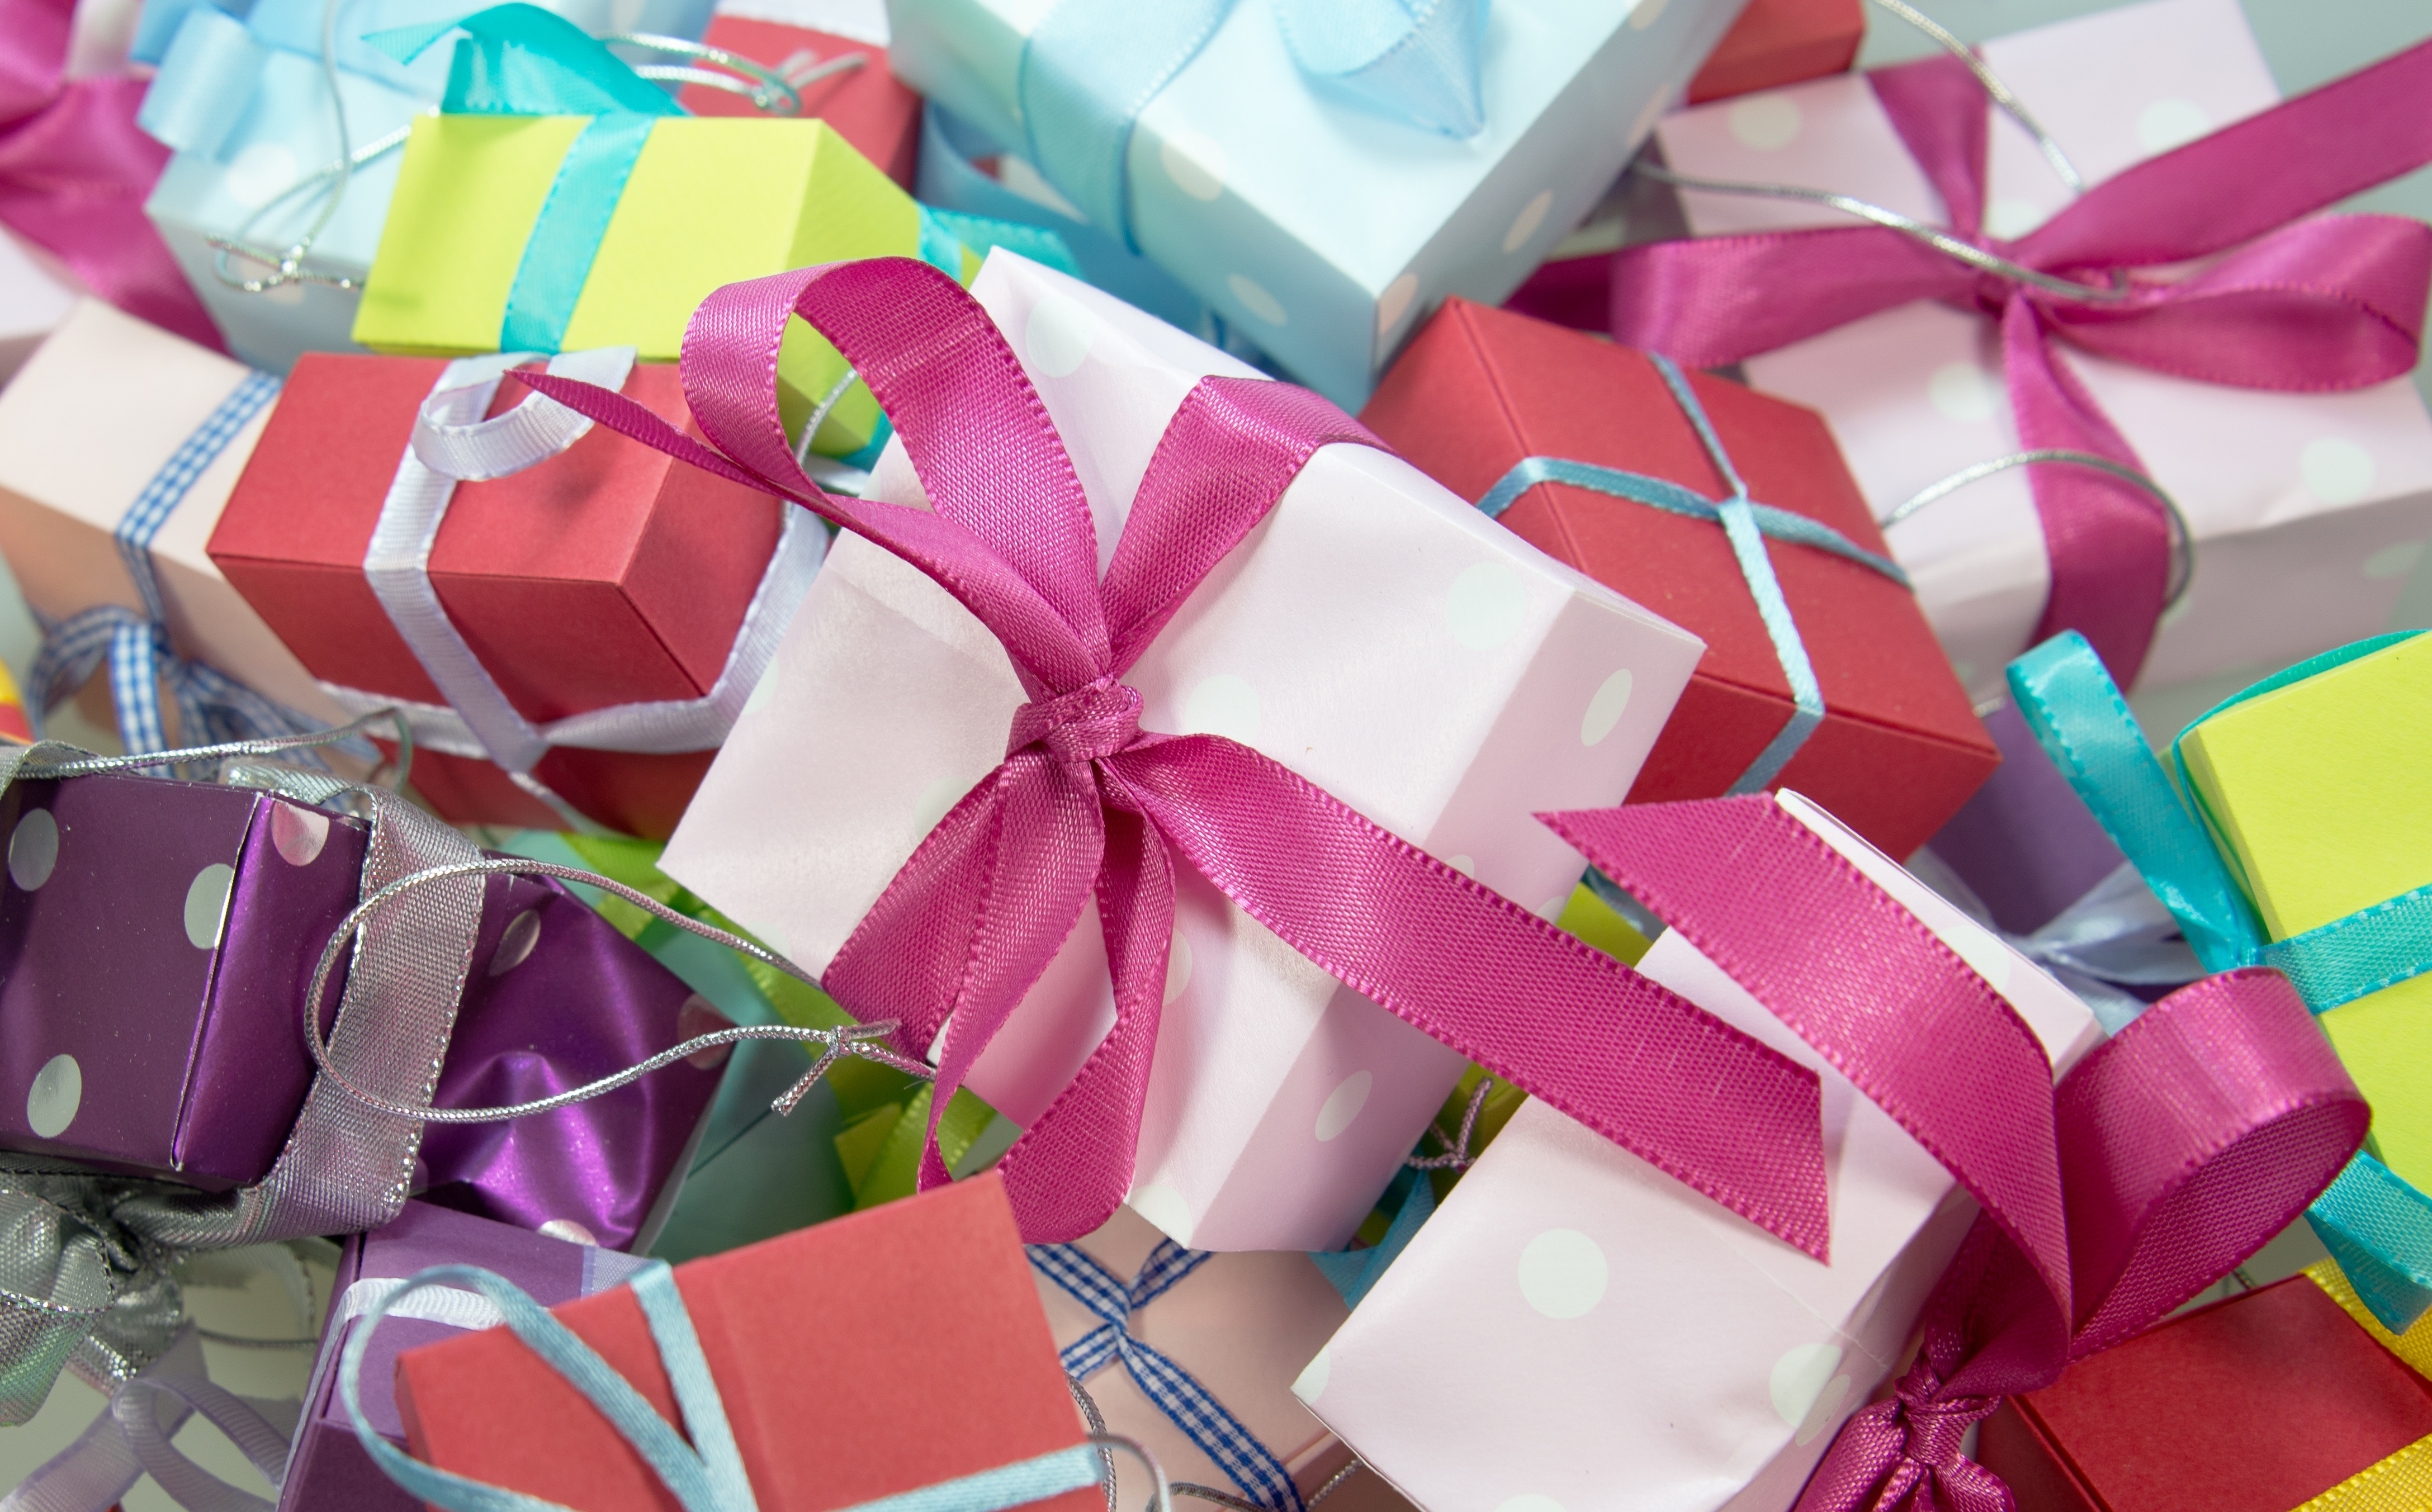 Free stock photos of gift wrap paper pexels negle Images